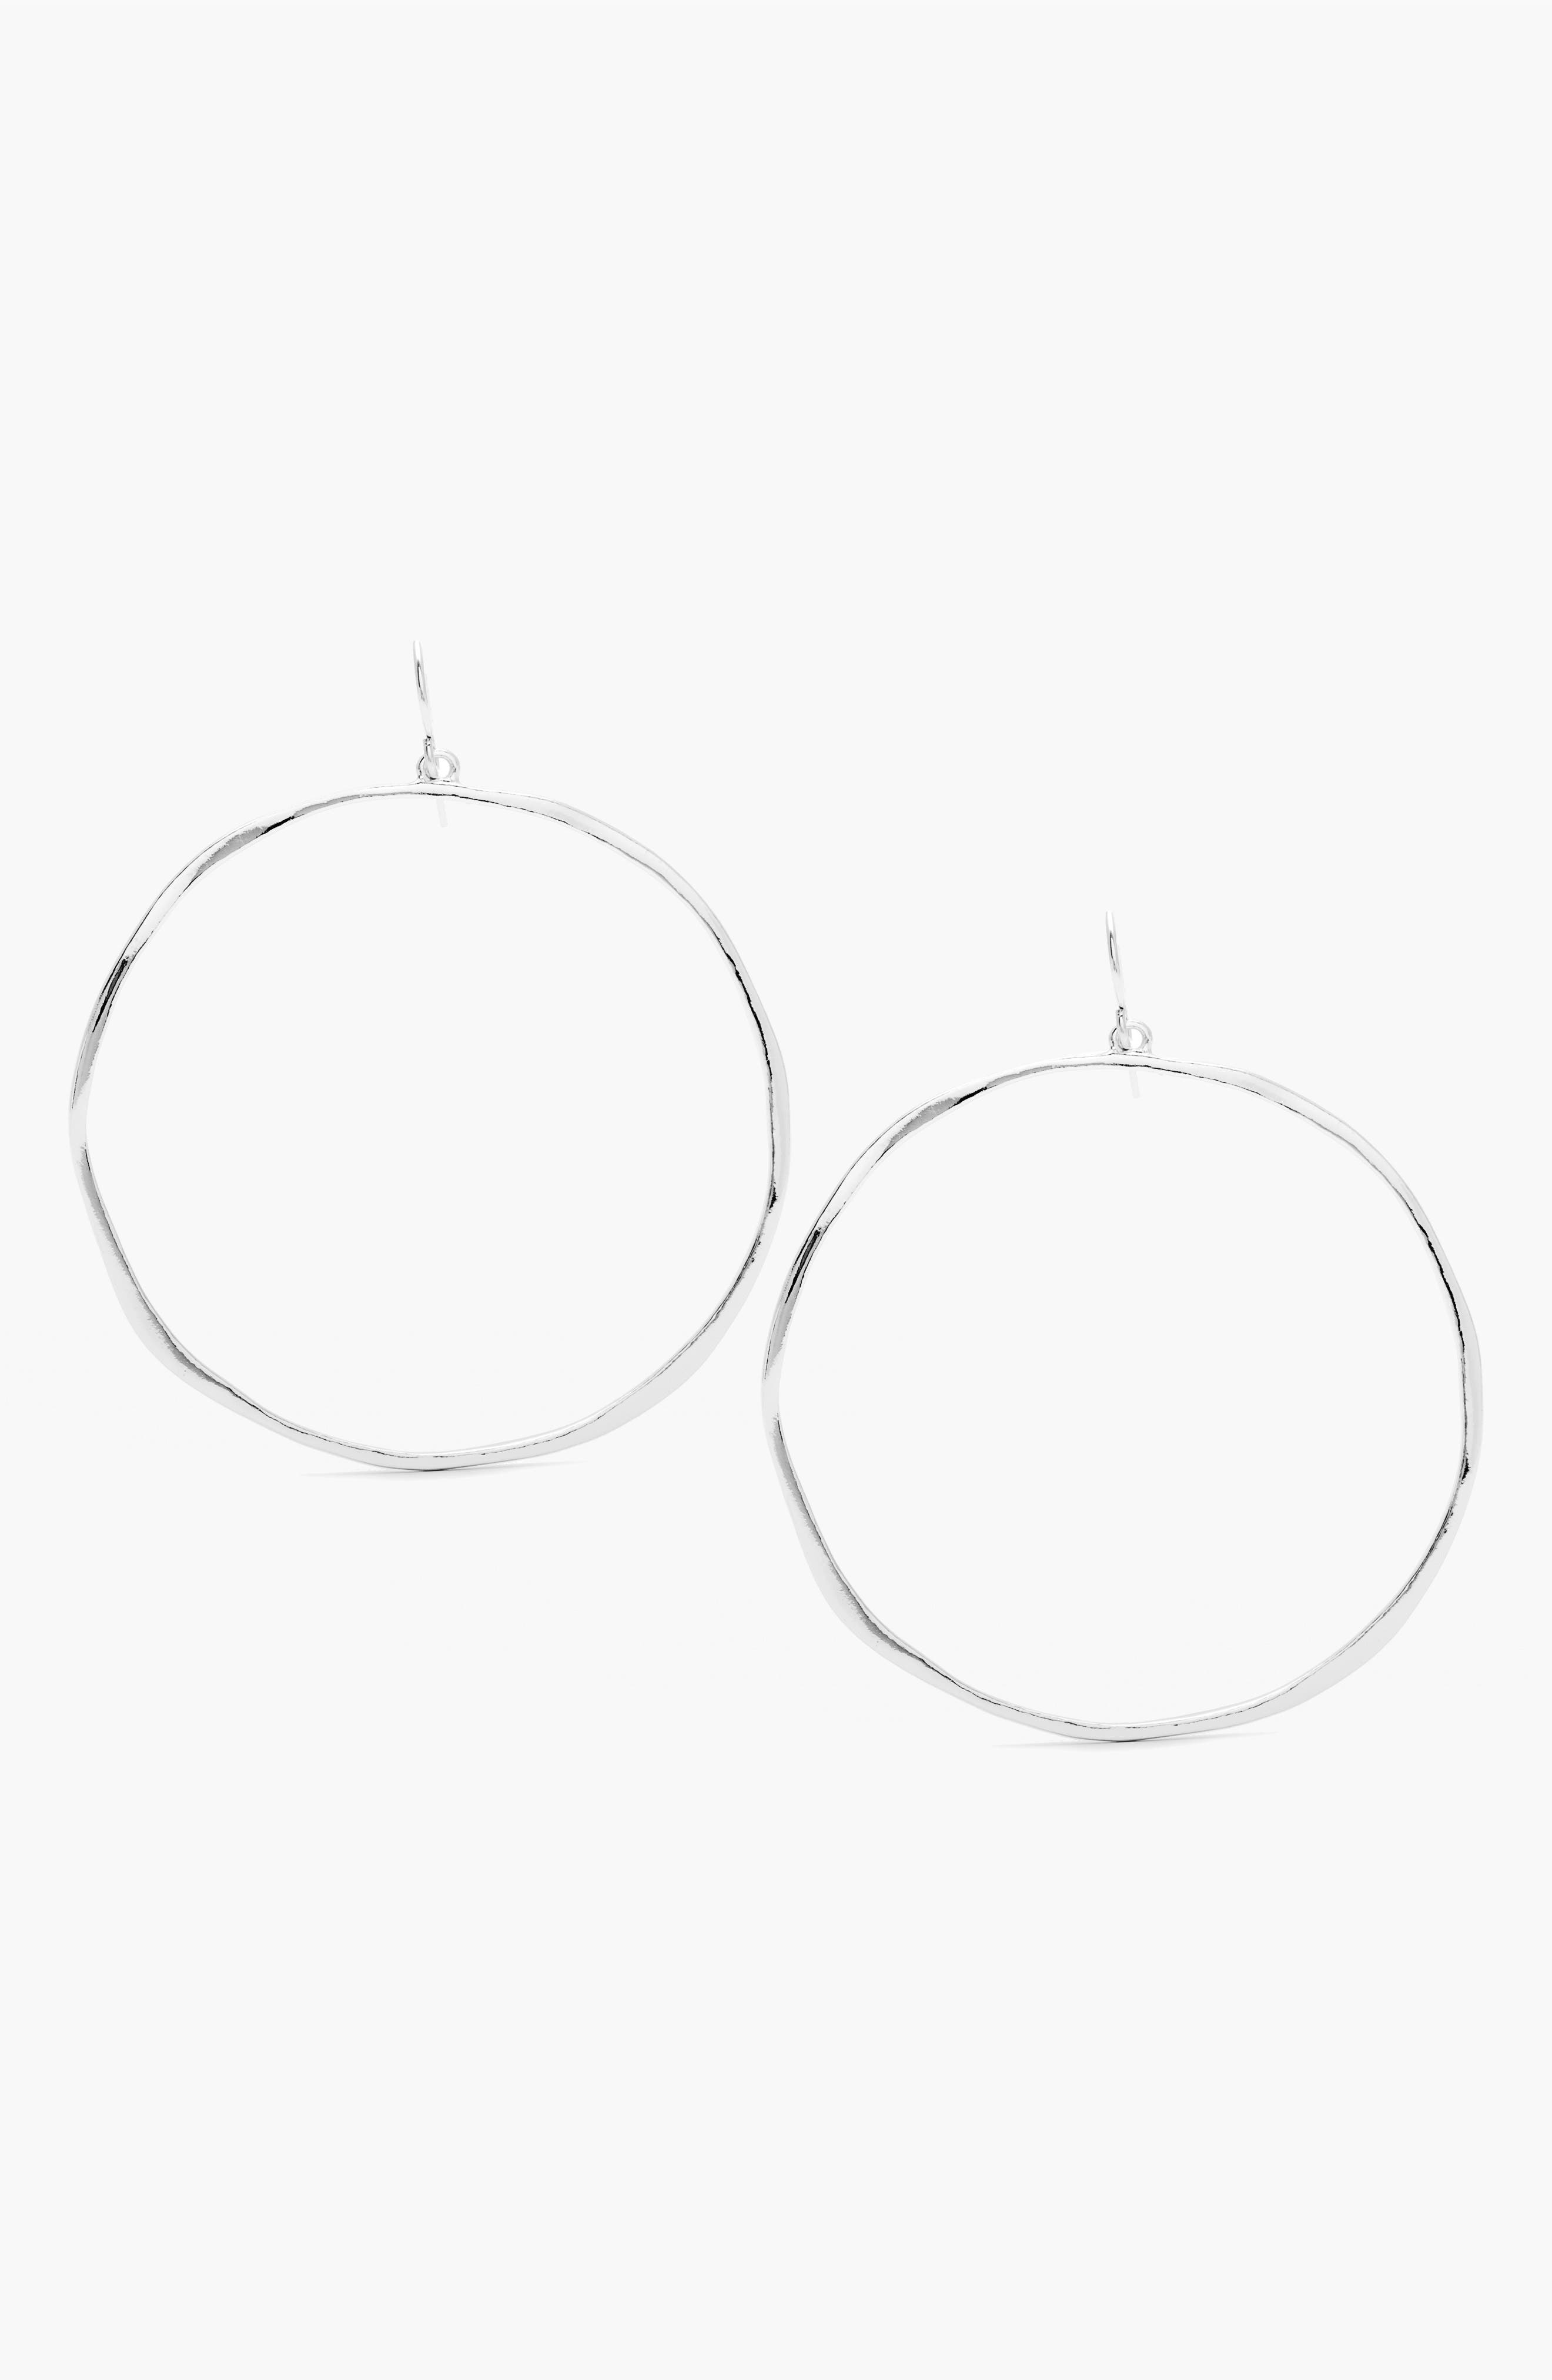 GORJANA, G Ring Hoops, Alternate thumbnail 4, color, SILVER